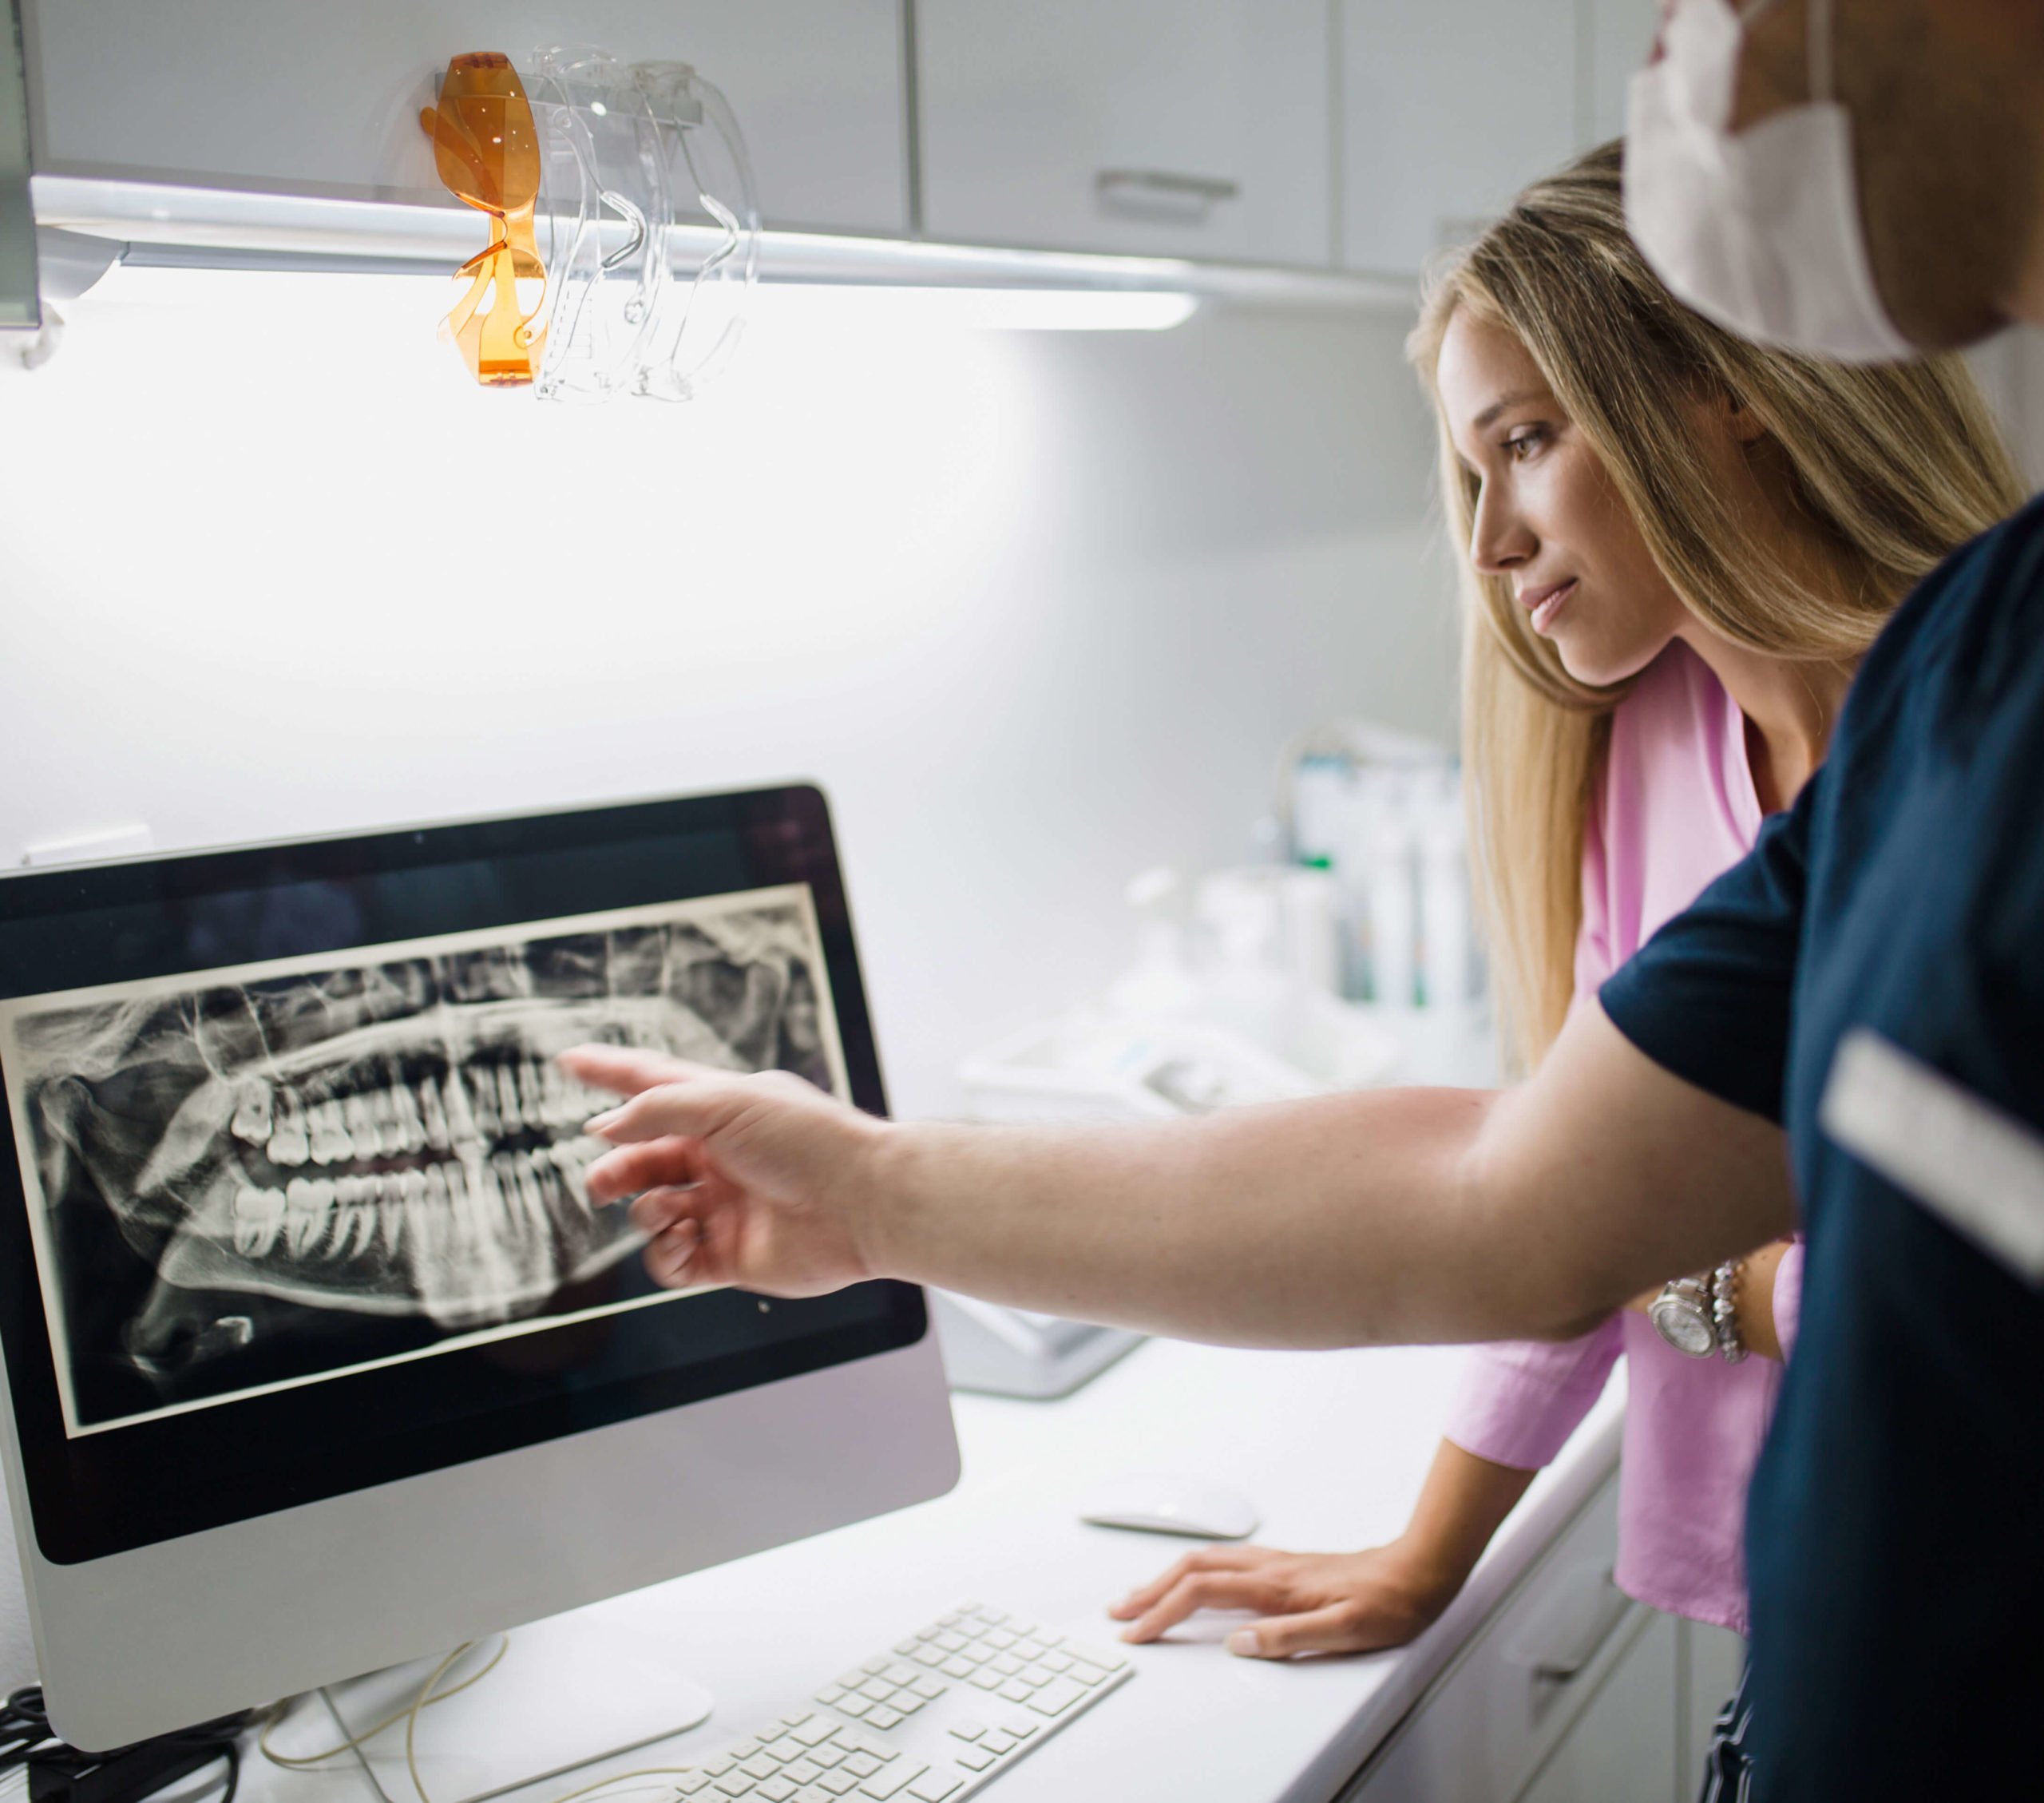 Two healthcare professionals reviewing an x-ray on a monitor